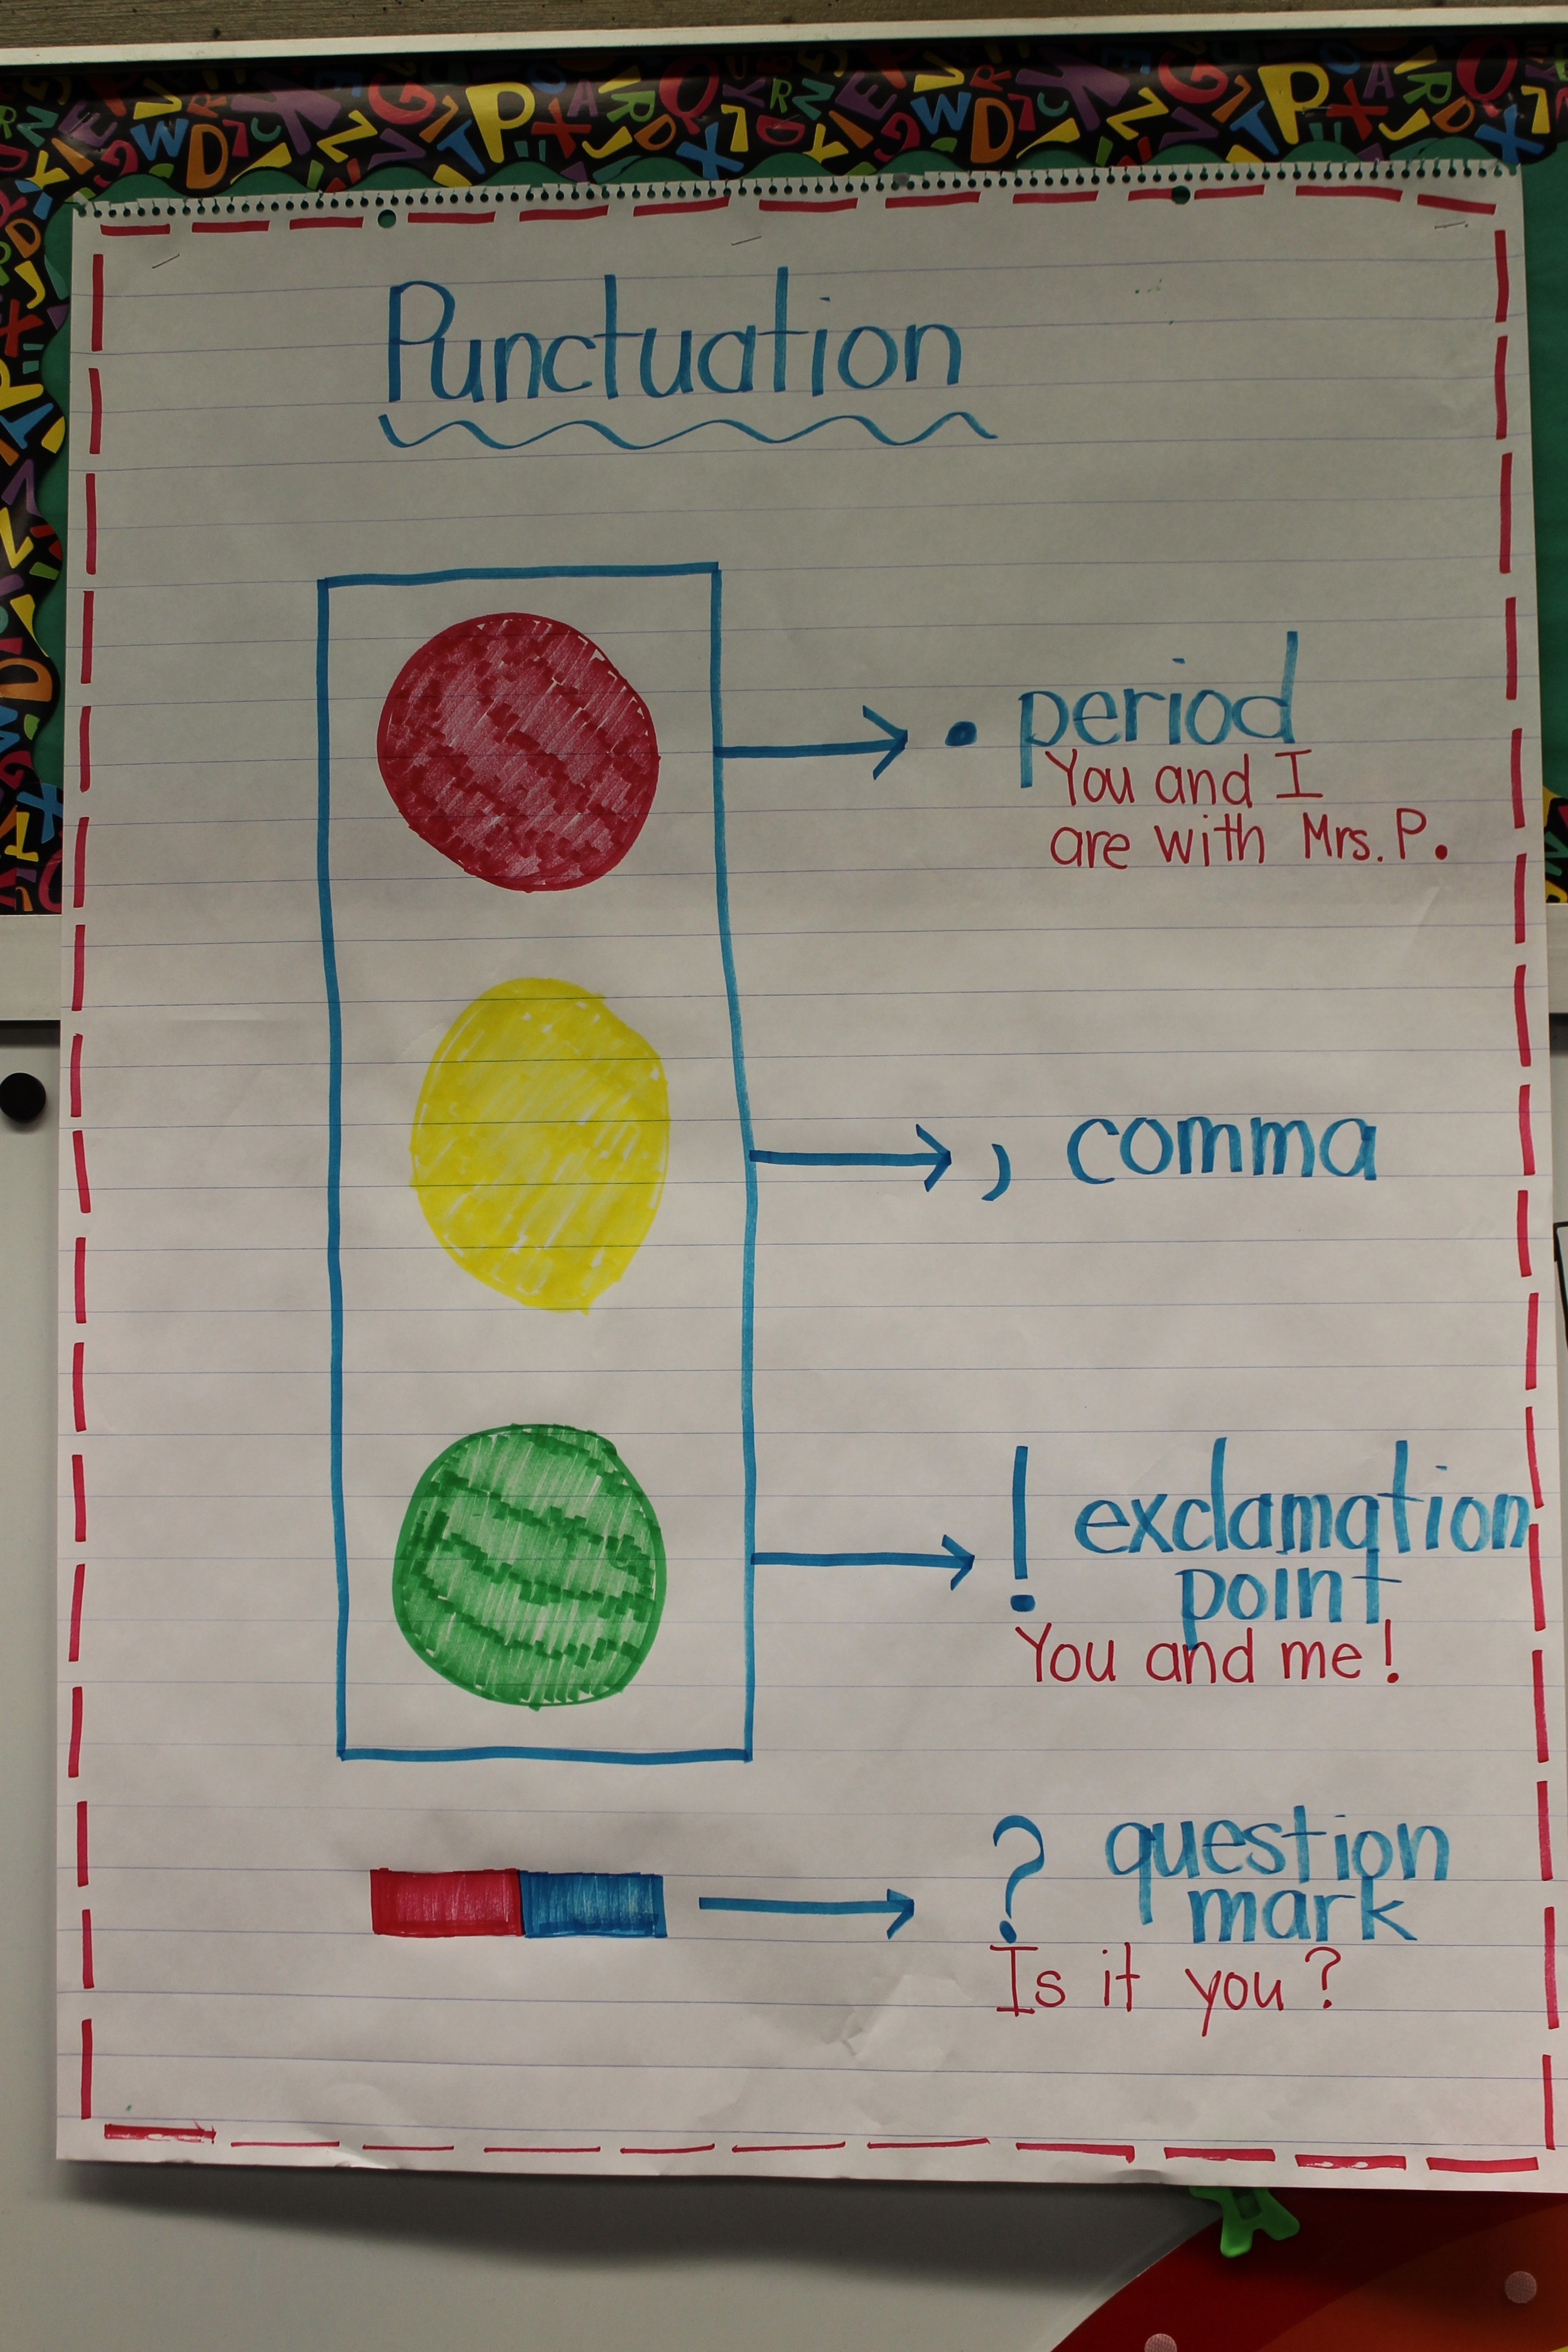 Anchor Charts in Kindergarten http://kpoindexter.wordpress.com/category/anchor-charts/